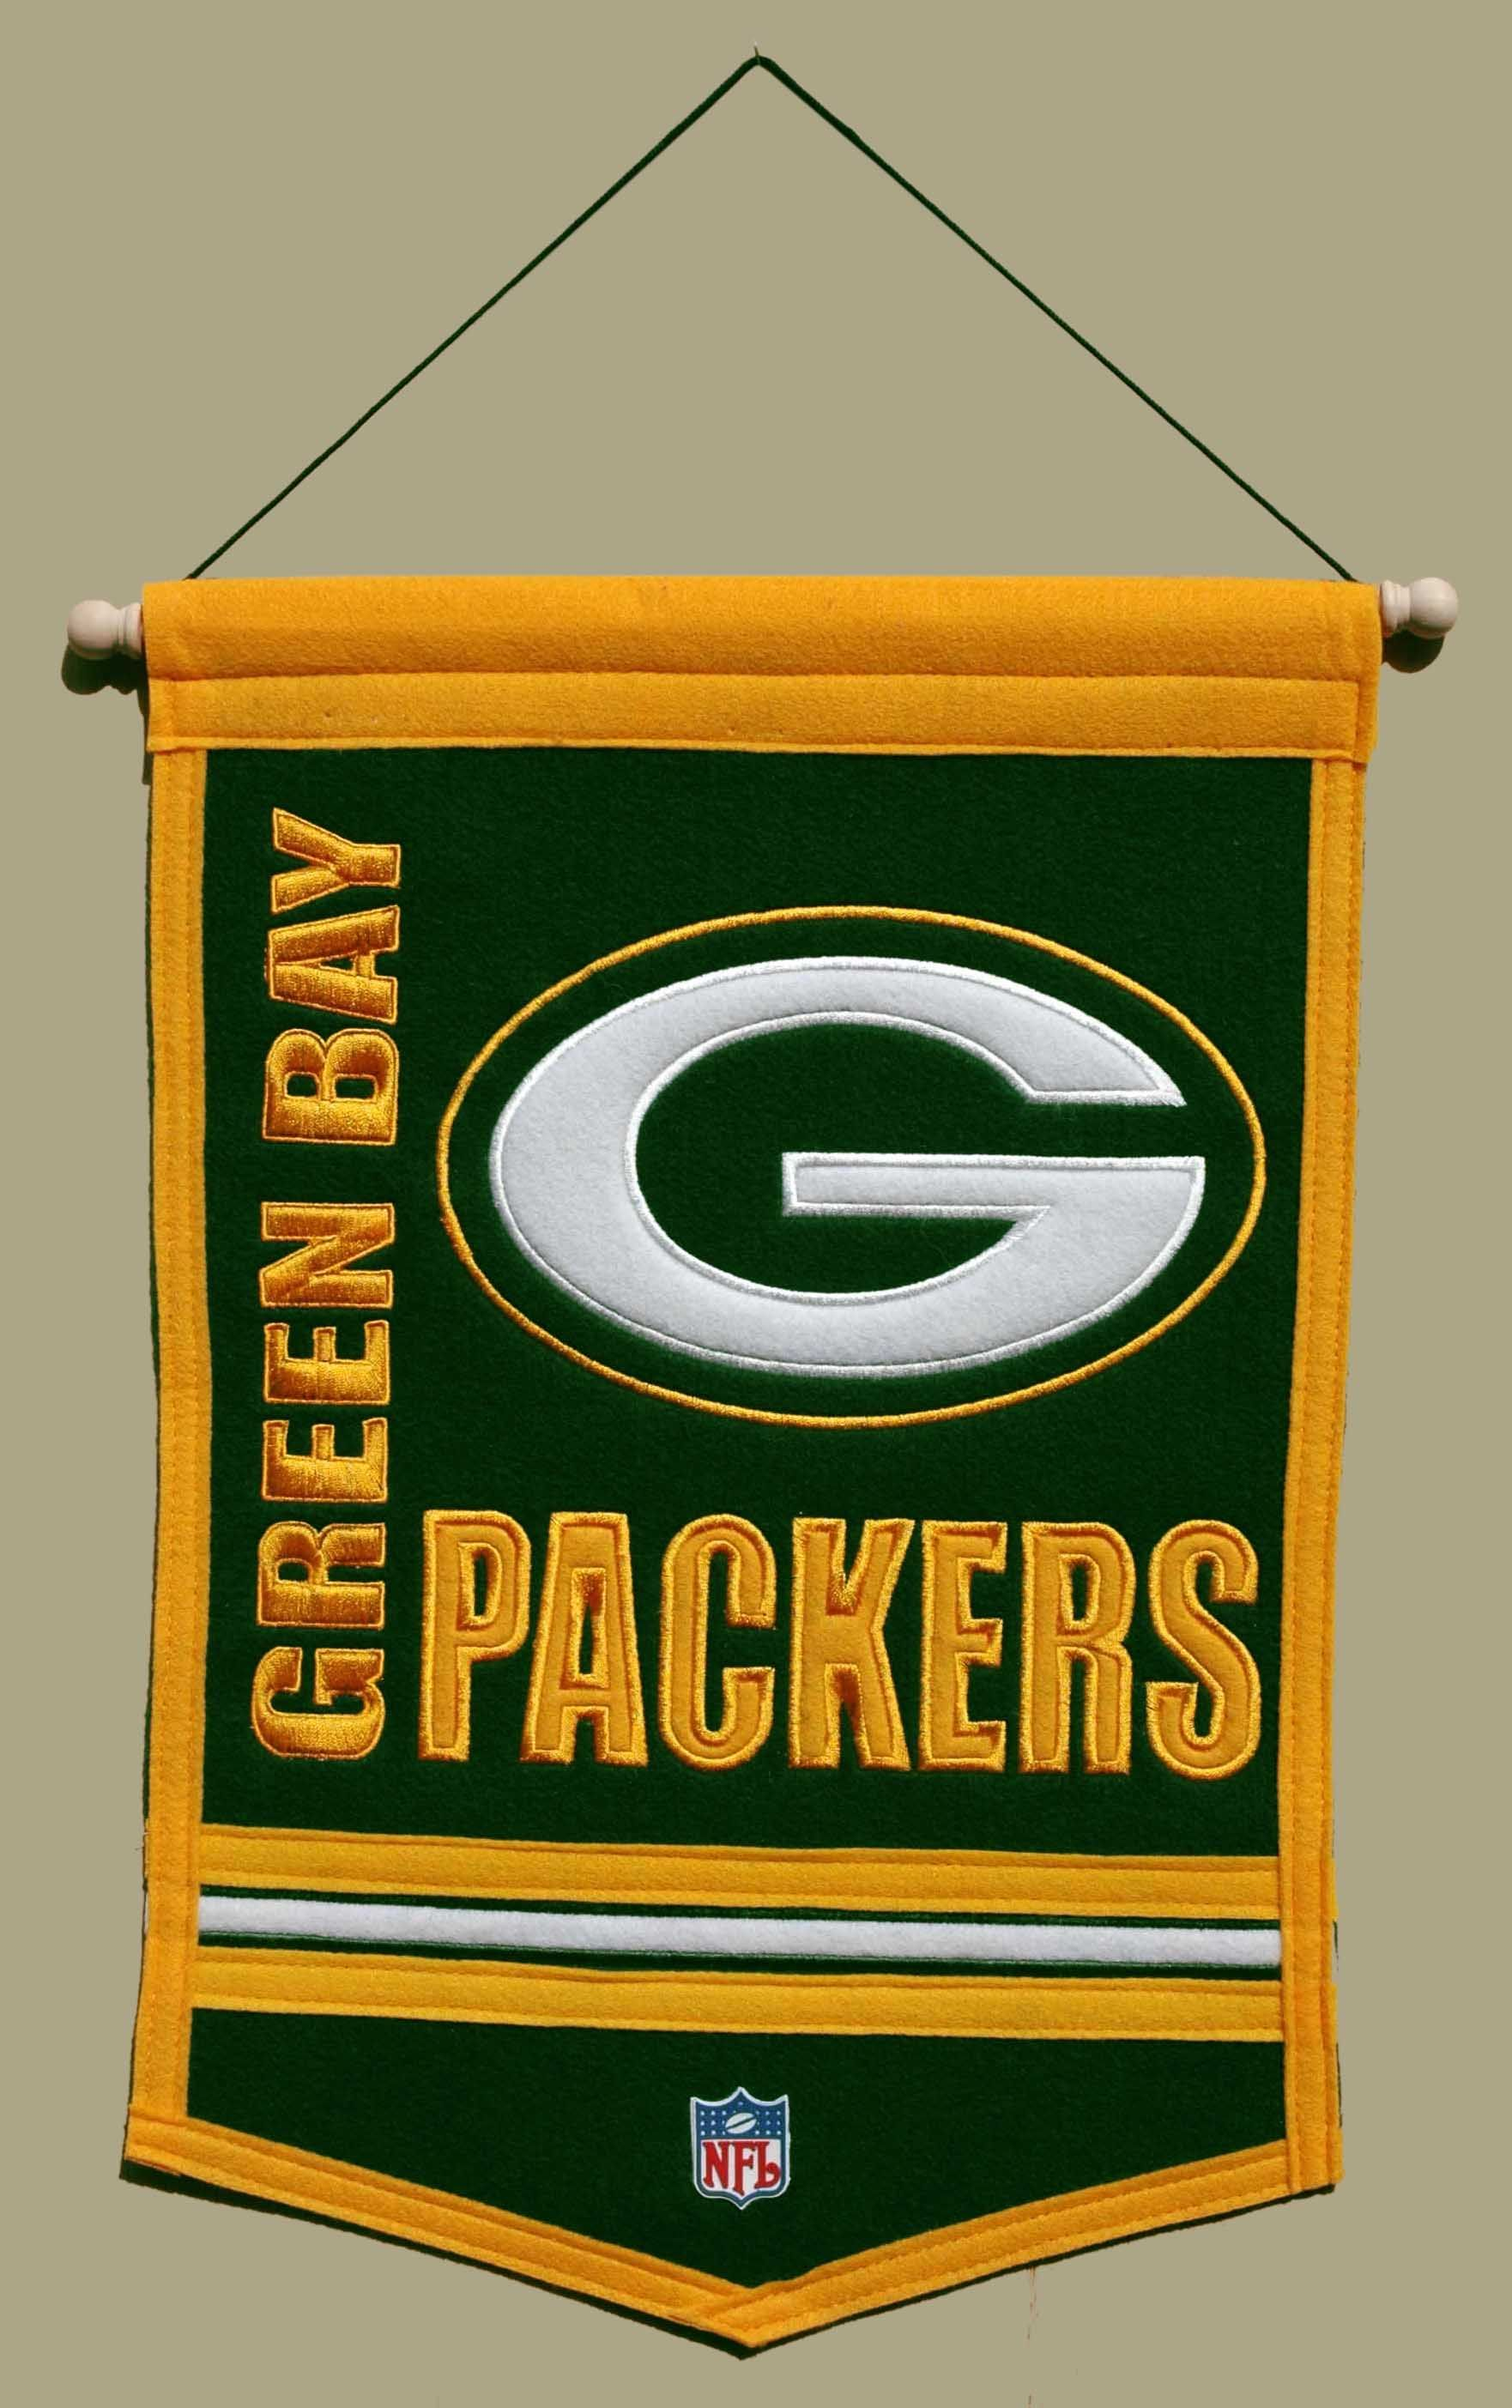 Green Bay Packers Home Nfl Traditions Green Bay Packers Traditions Banner Green Bay My Home Design Packers